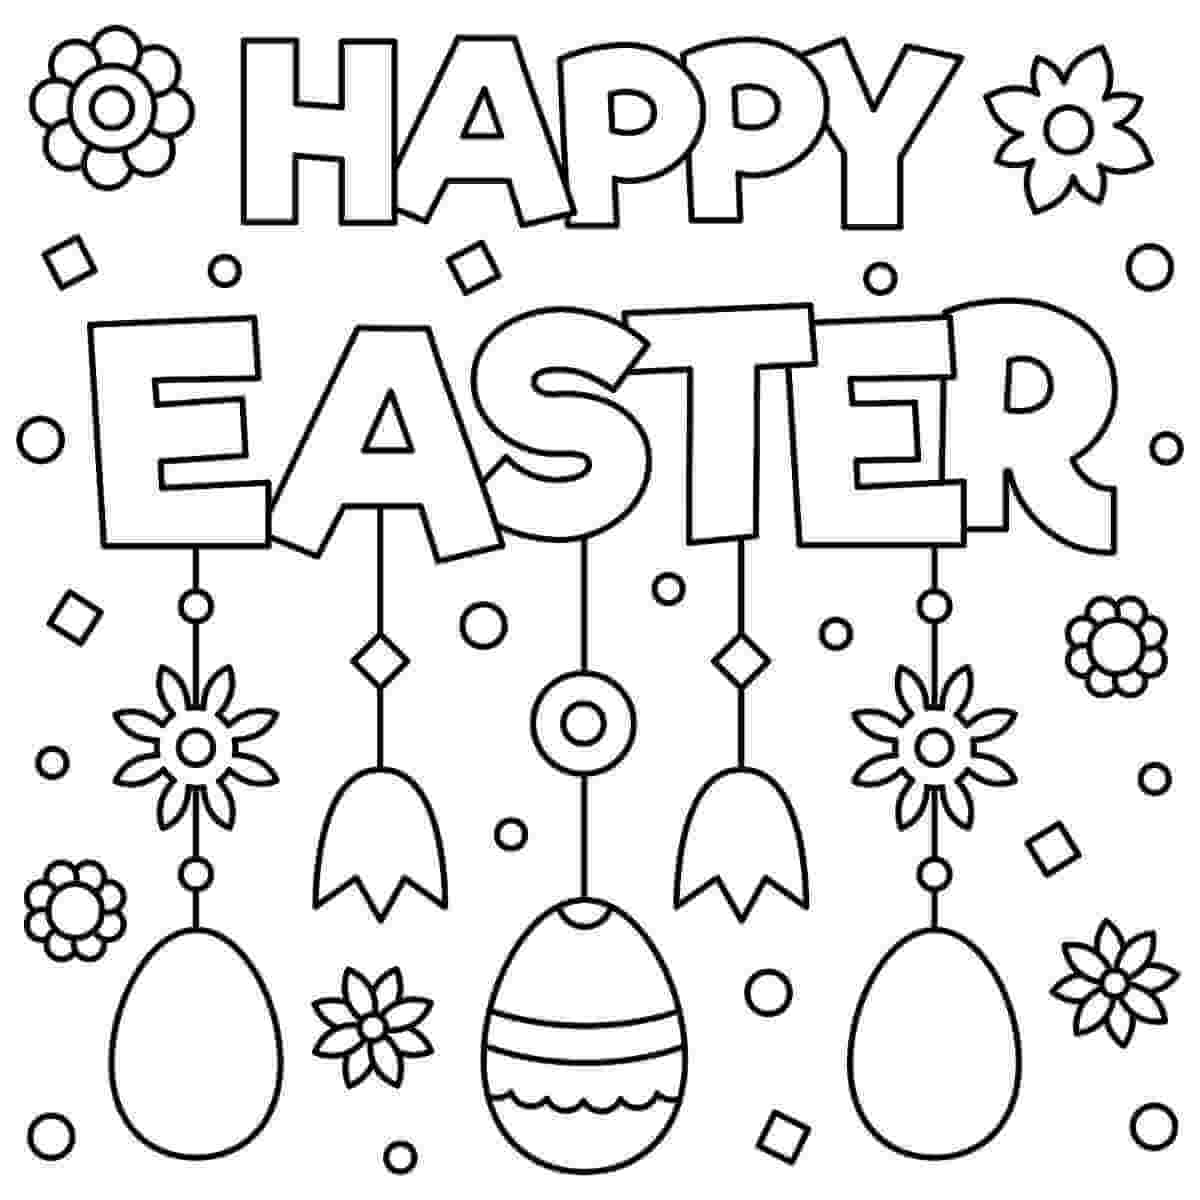 Happy Easter Wording Coloring Pages